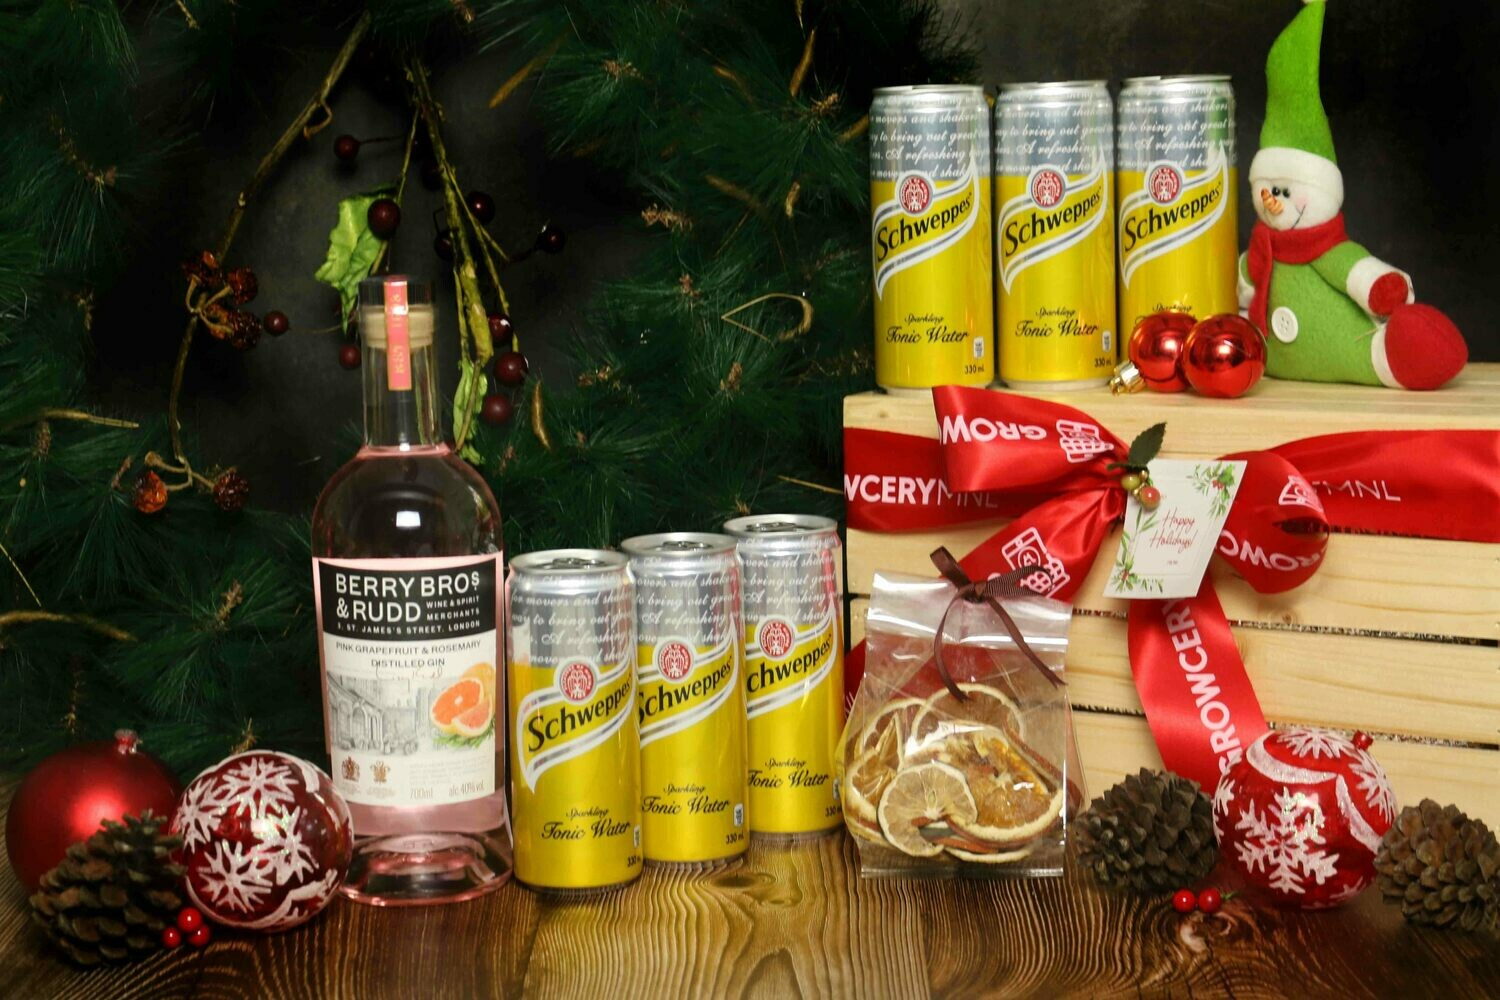 Berry Bros & Rudd Pink Grapefruit & Rosemary Gin Set